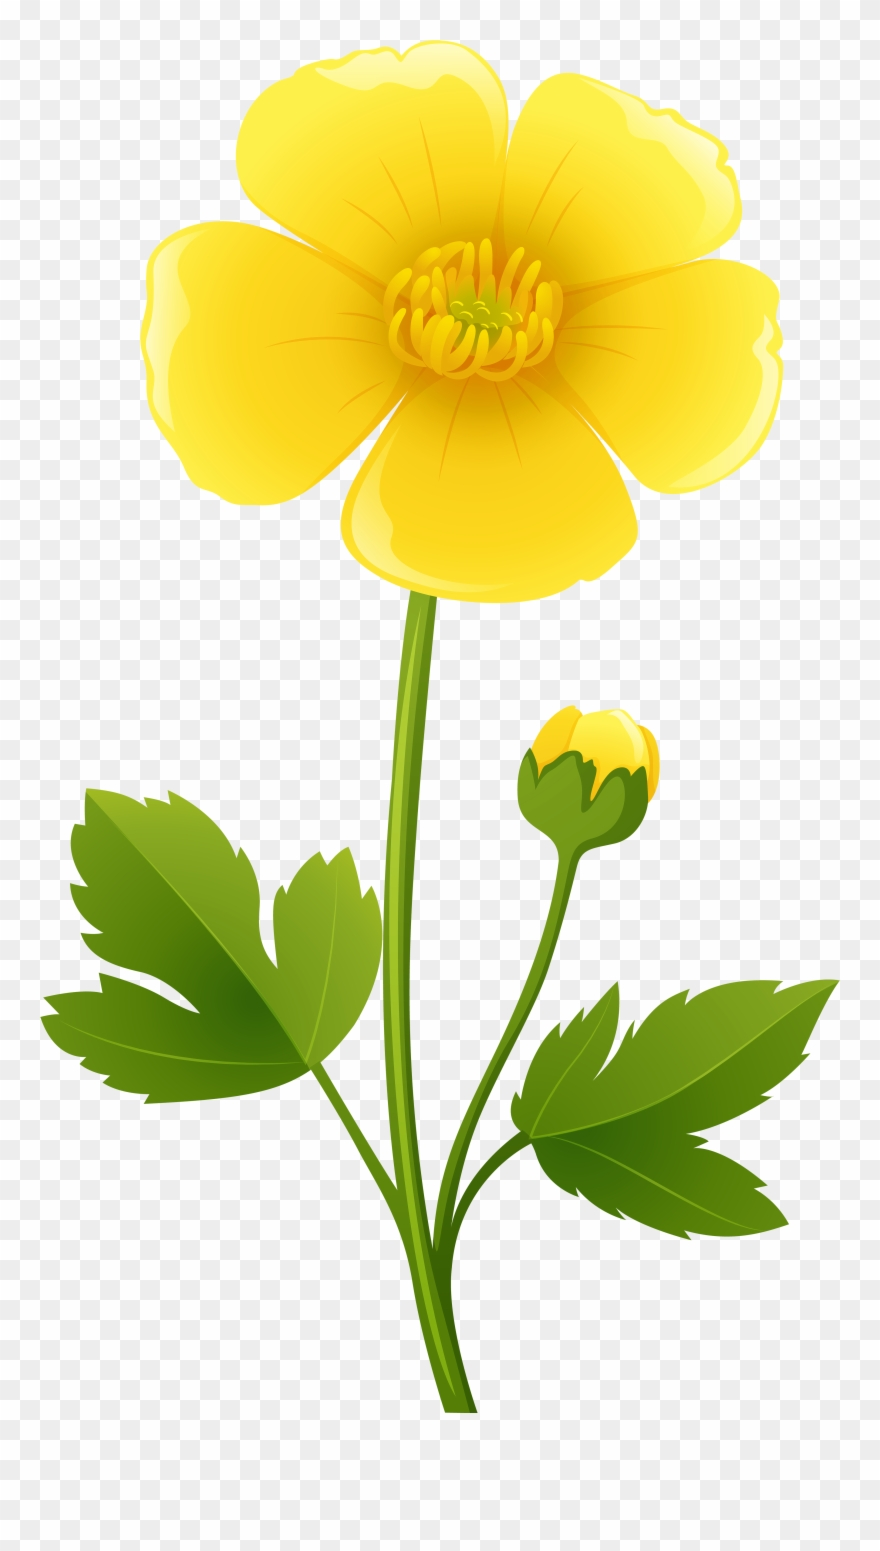 Freeuse library . California clipart state california flower